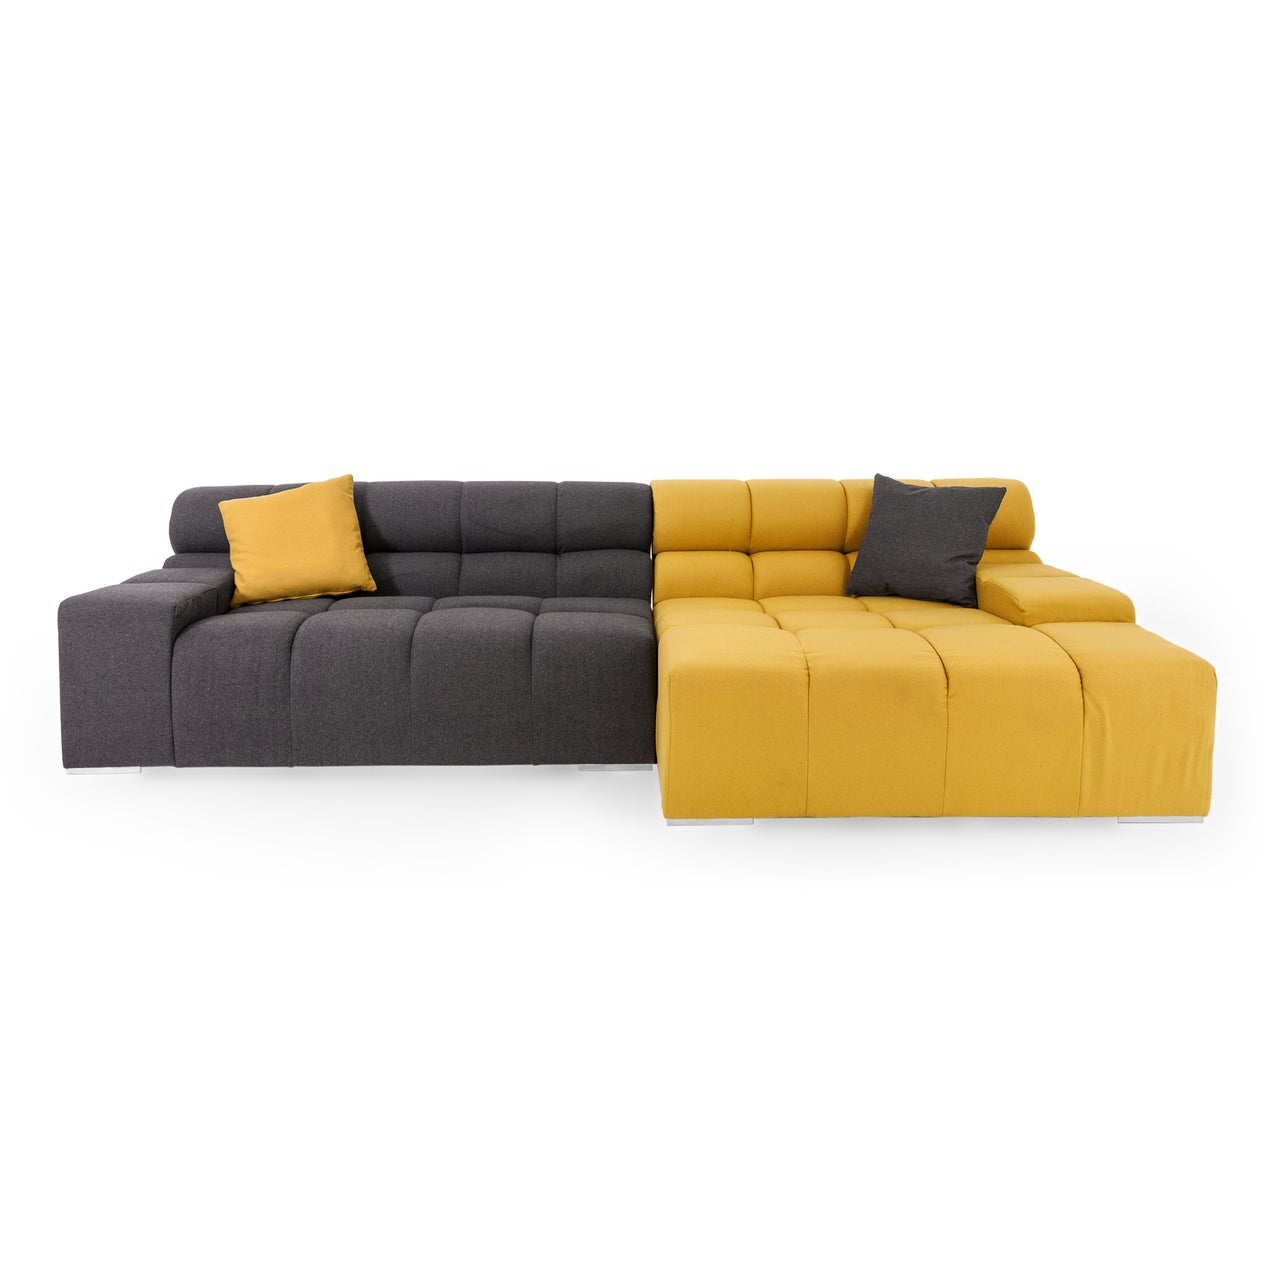 Cubix Premium Cashmere Modular Right Sectional Sofa (Yell...